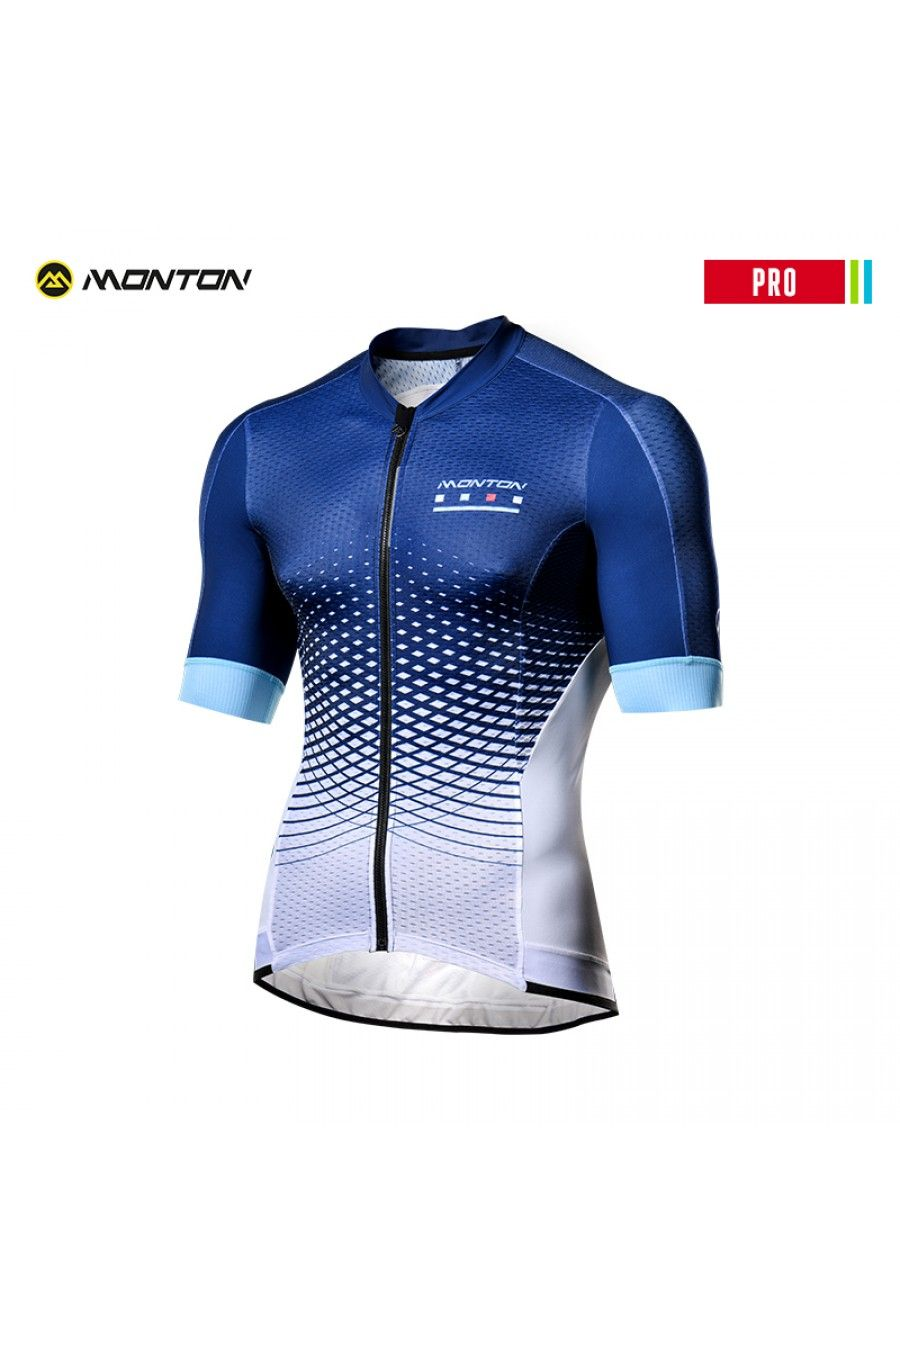 3a9d4d311 Blue and white cycling jersey